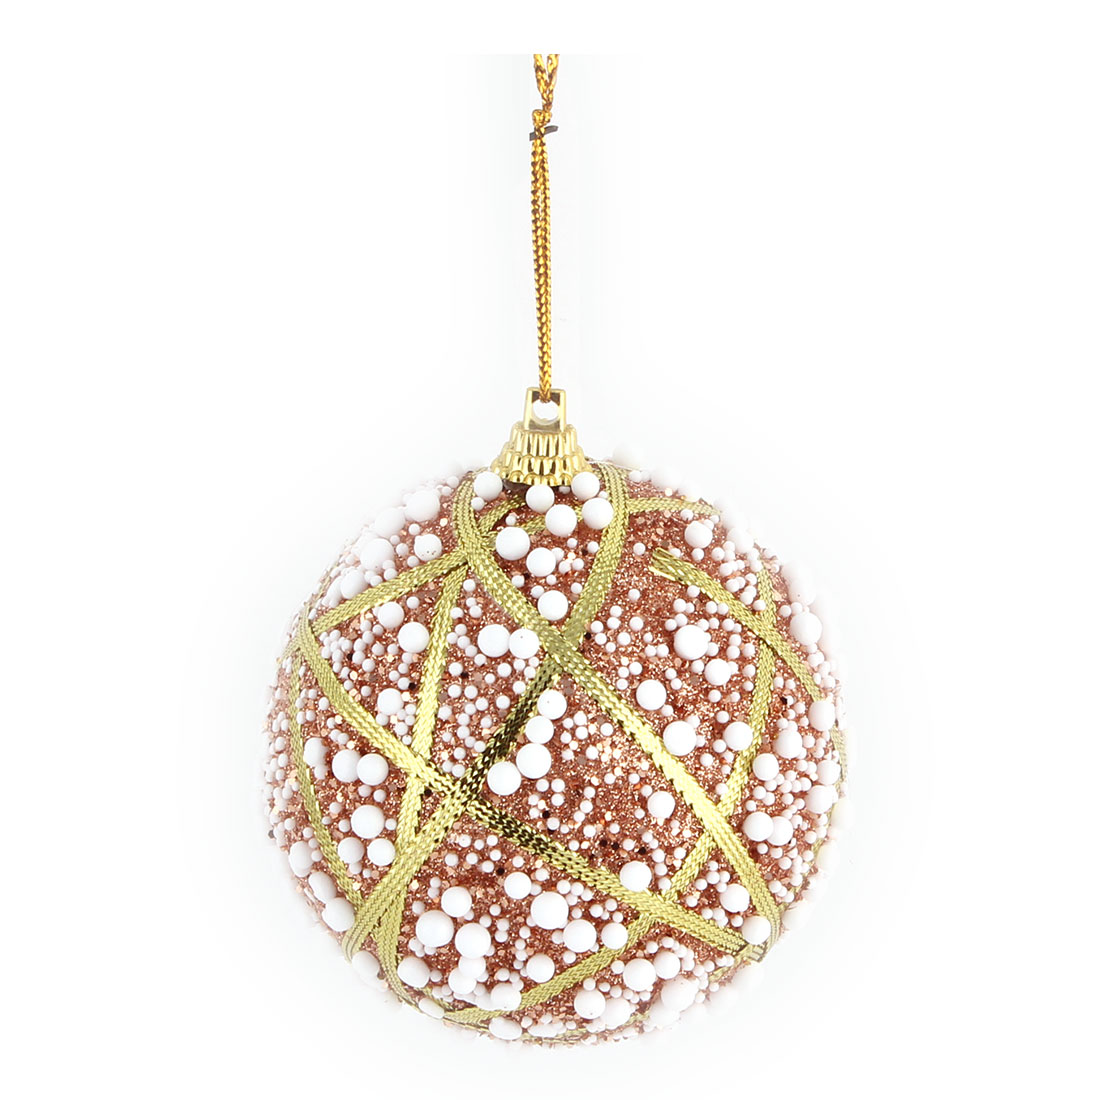 Home Christmas Party Foam Snowflake Artificial Collectible Festive Hanging Ball